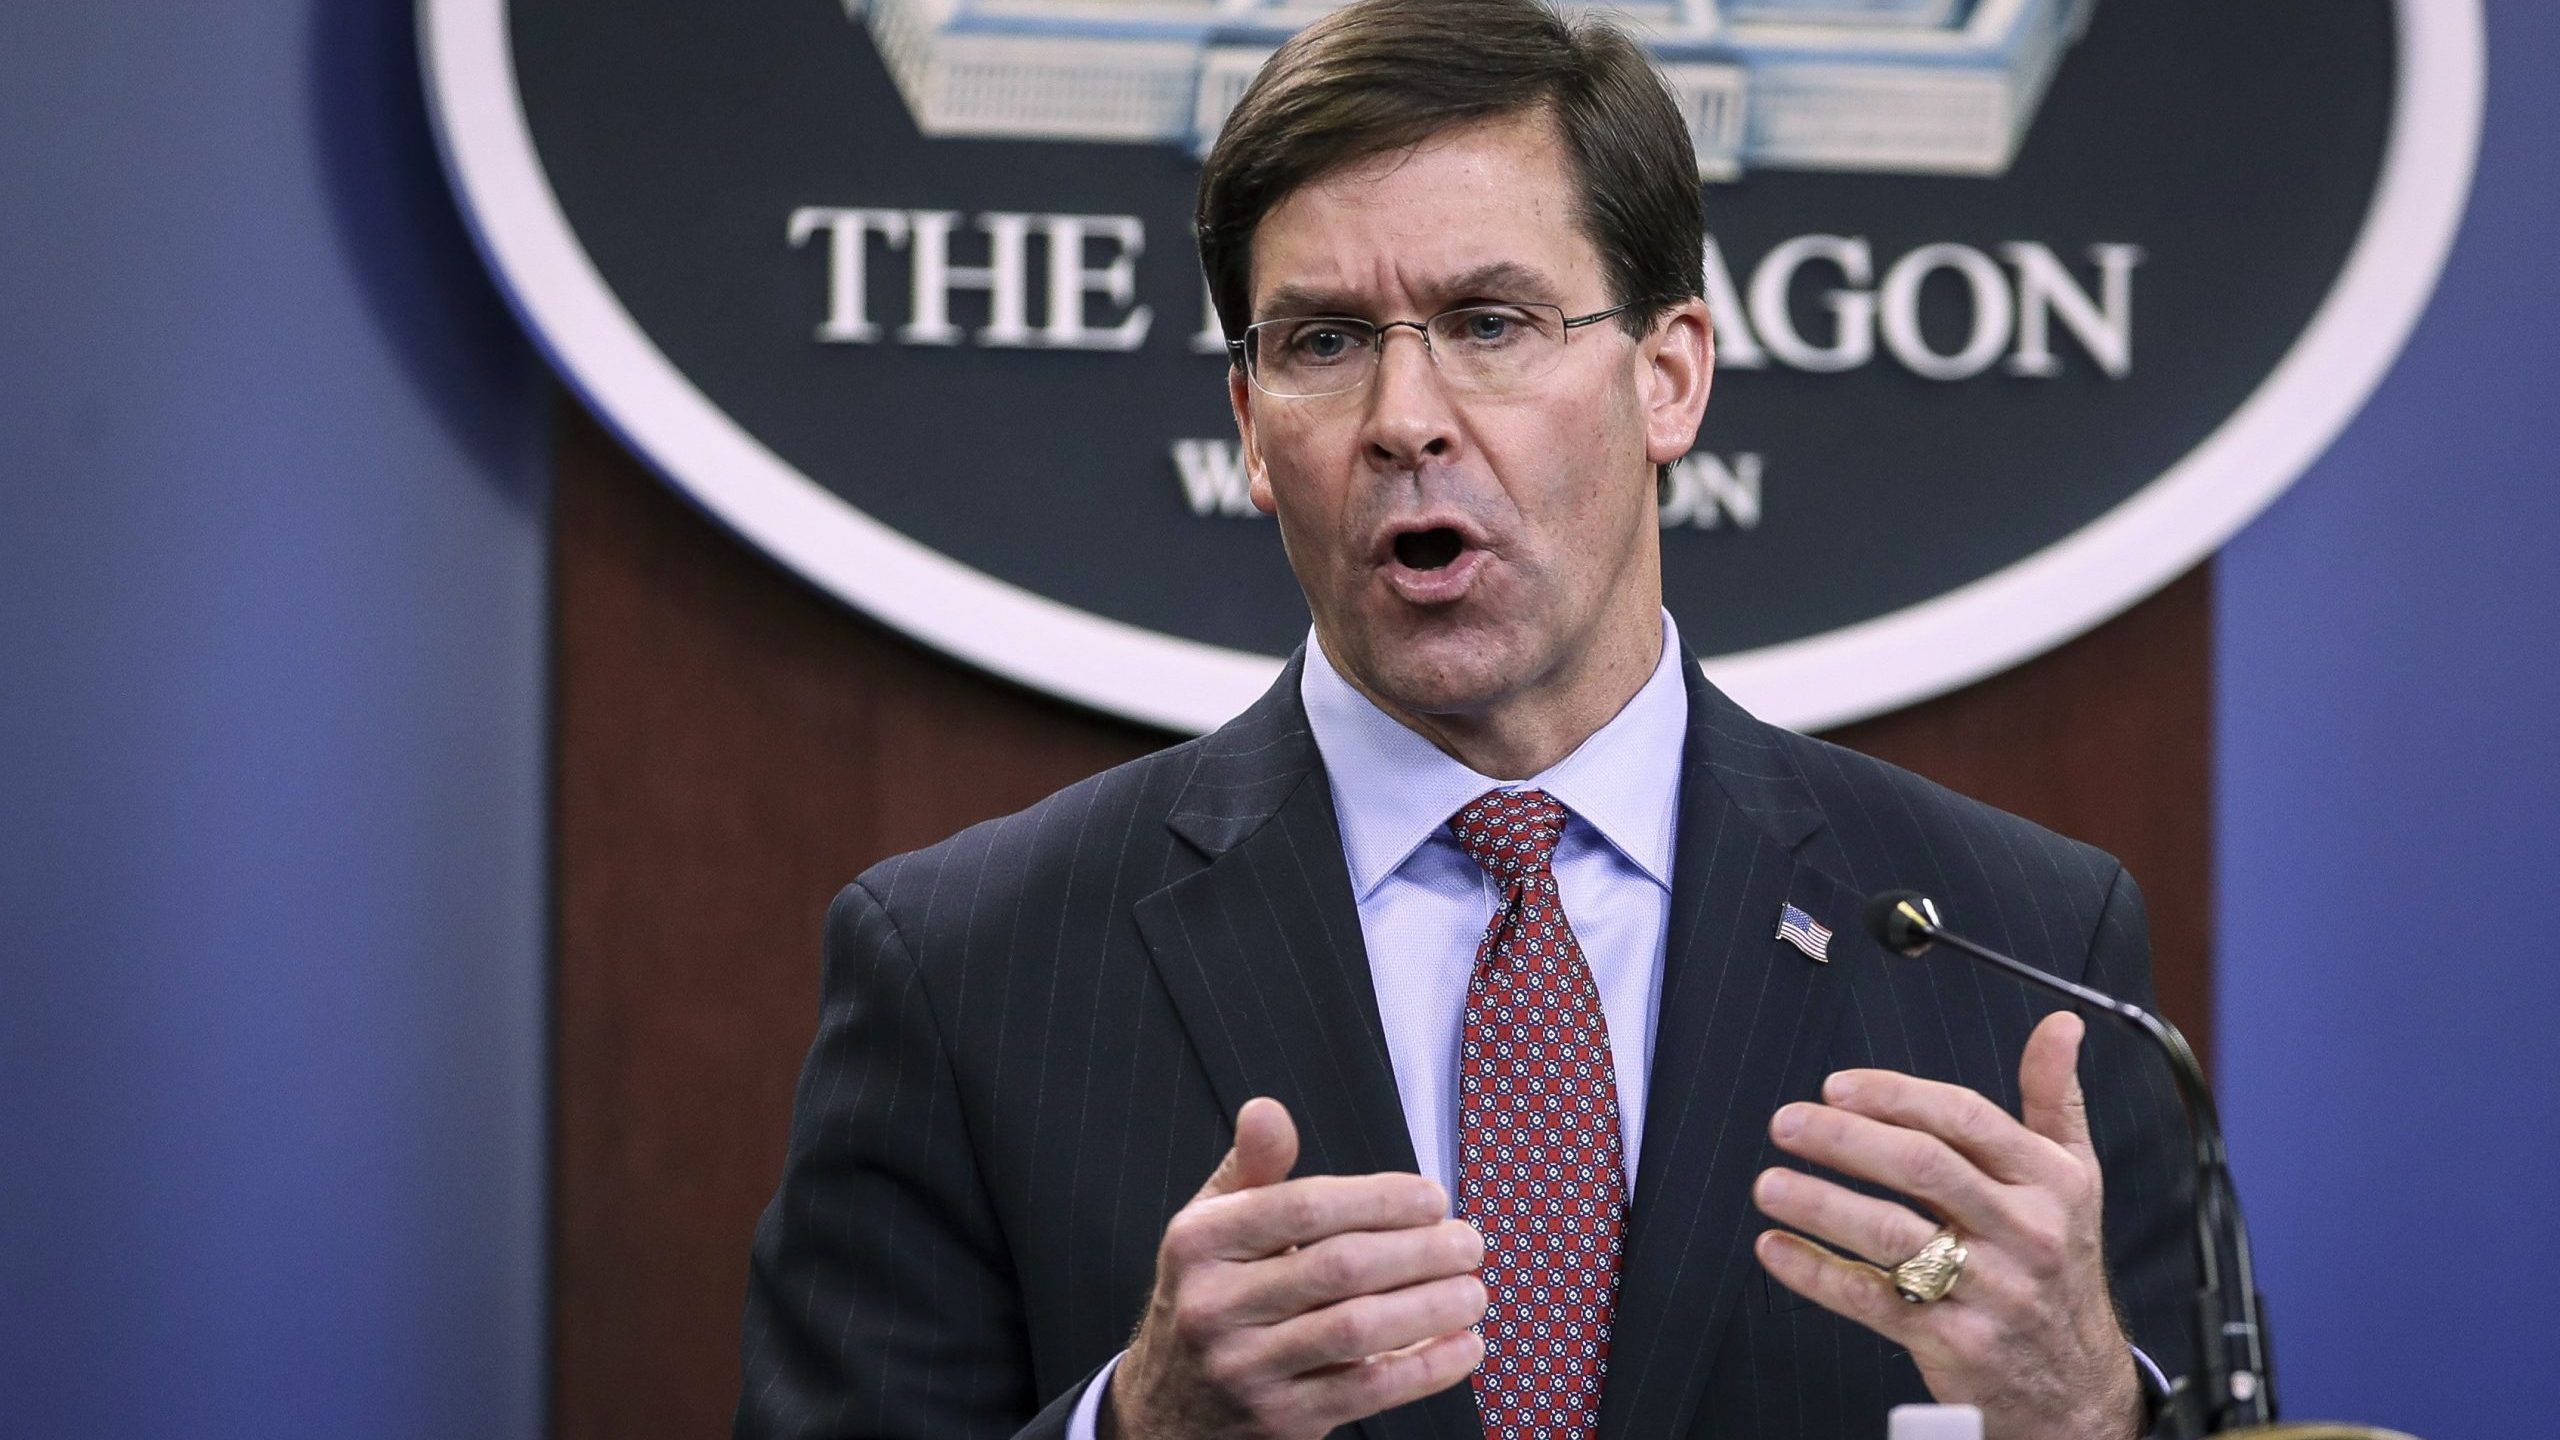 Secretary of Defense Mark Esper holds an end of year press conference at the Pentagon in Arlington, Virginia, on Dec. 20, 2019. (Credit: Drew Angerer / Getty Images)